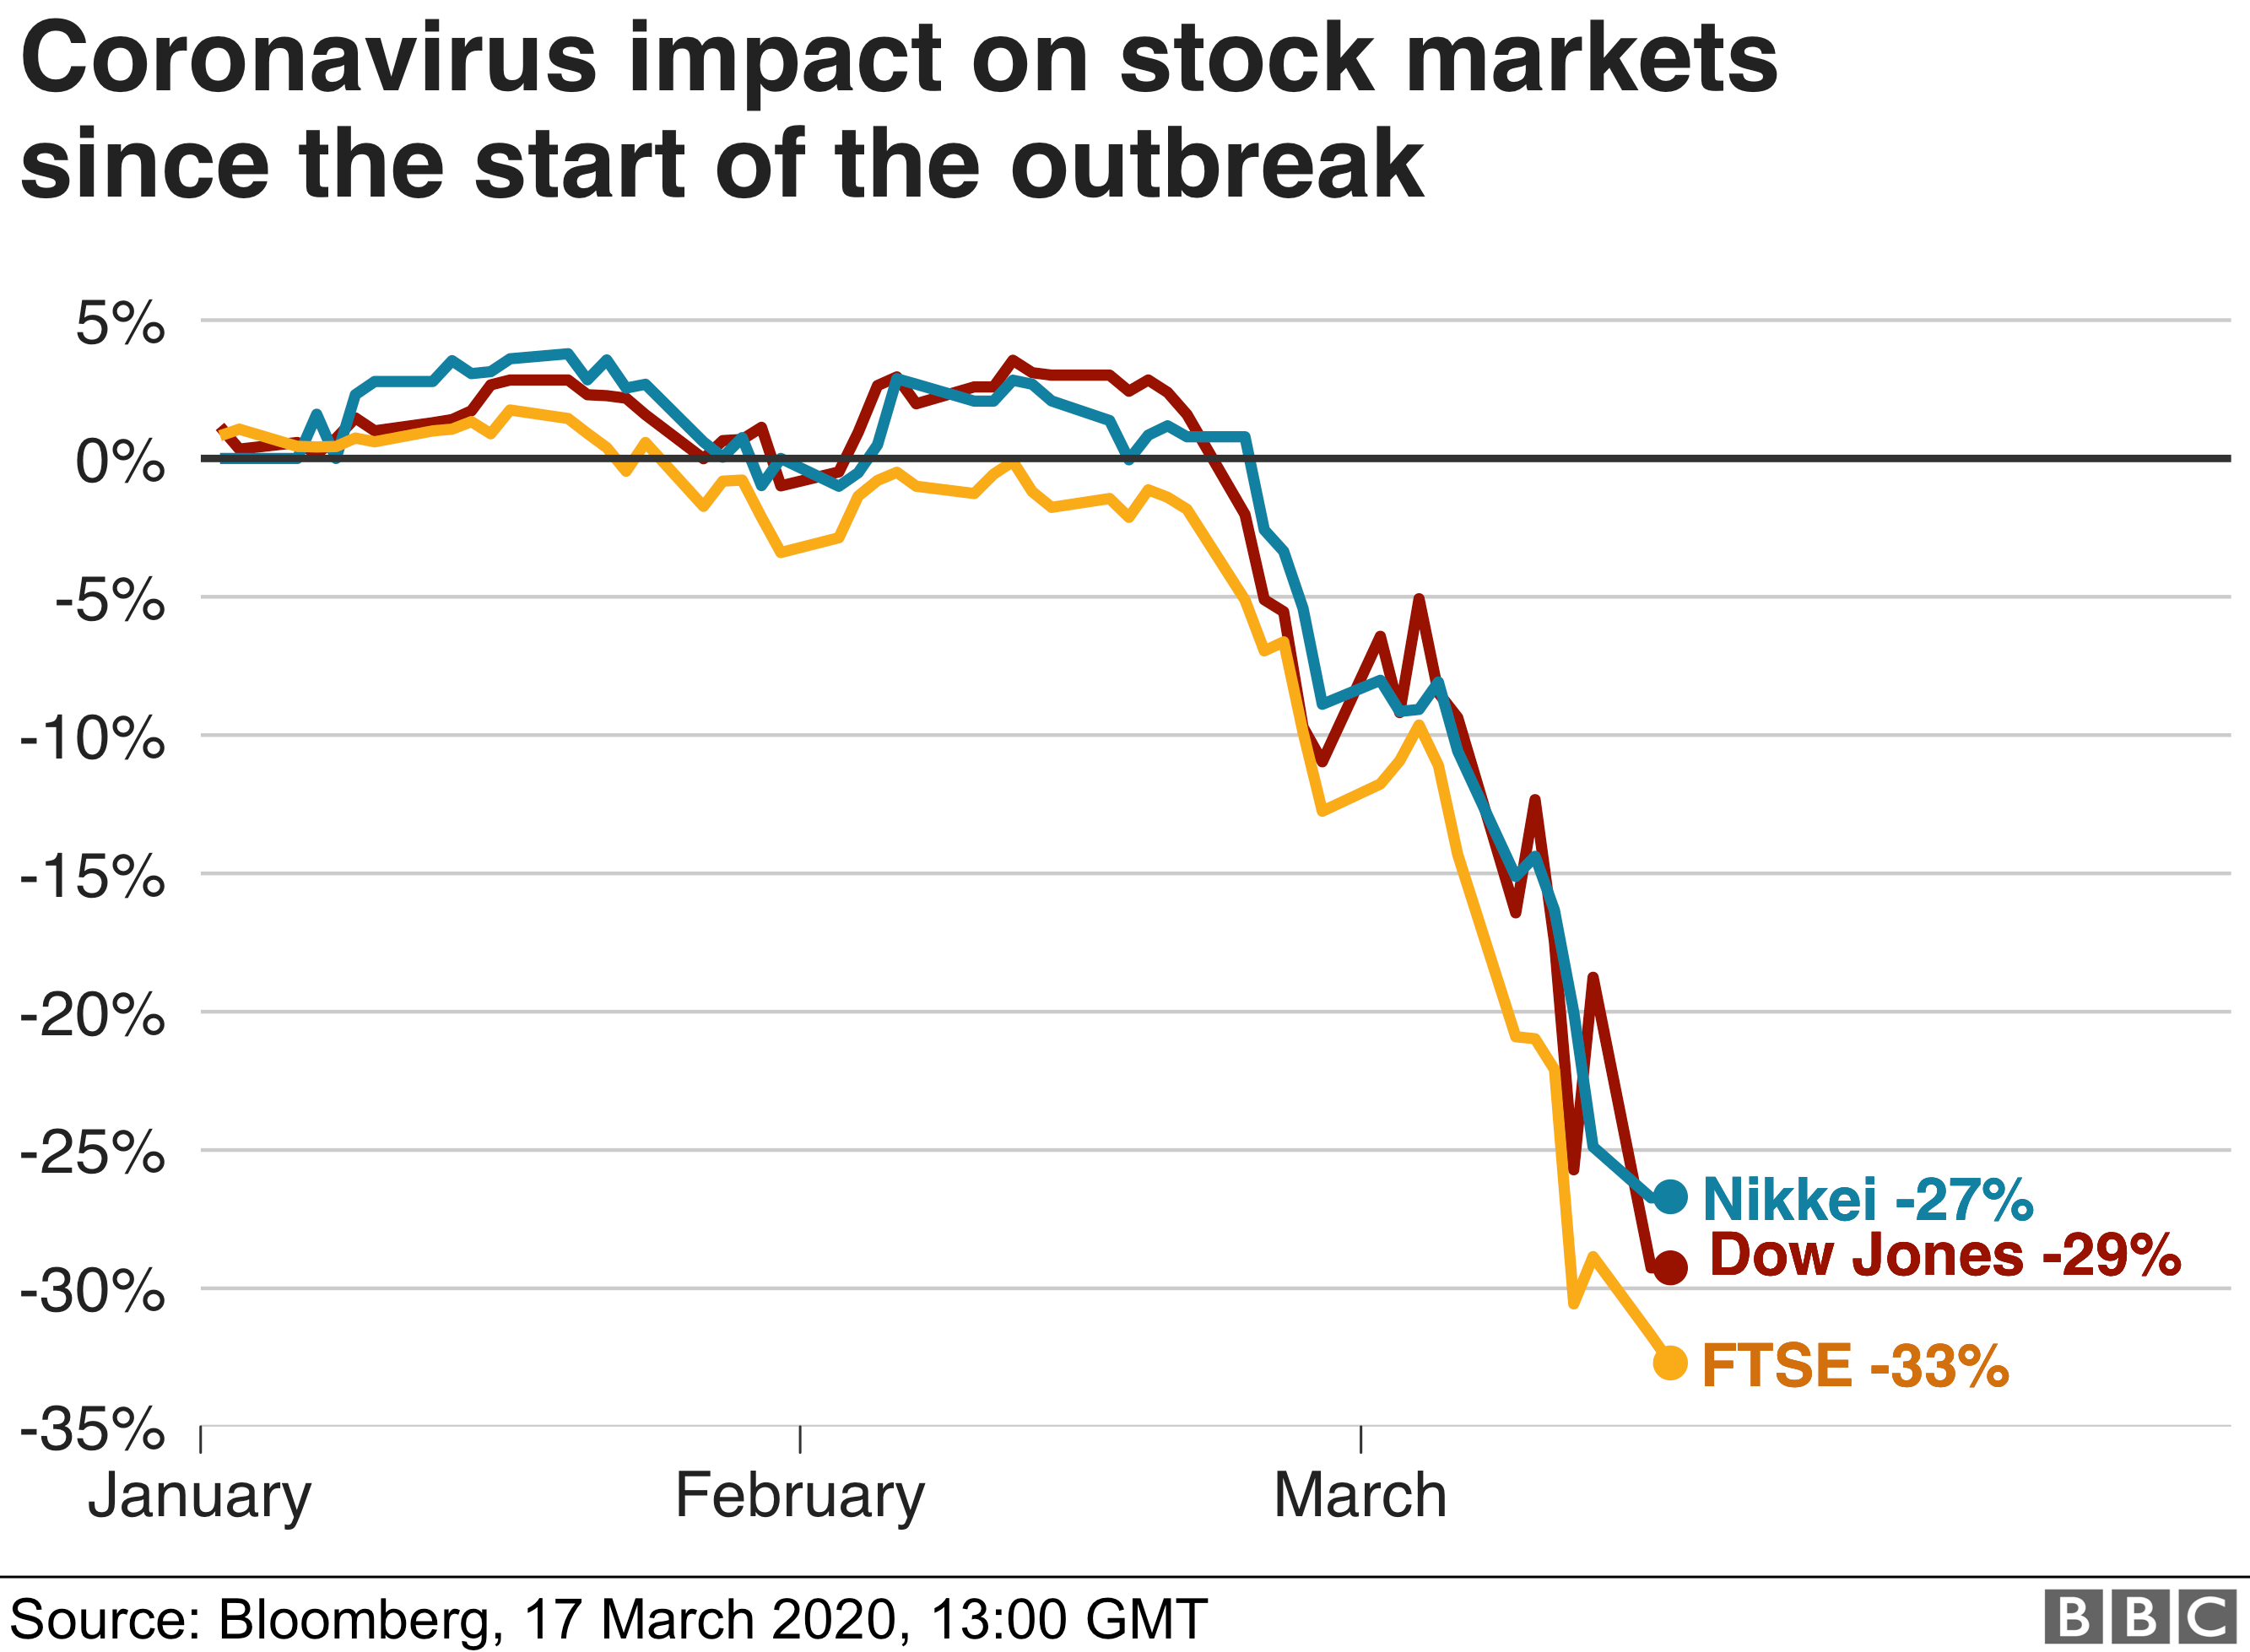 Stock market moves since the start of the coronavirus outbreak